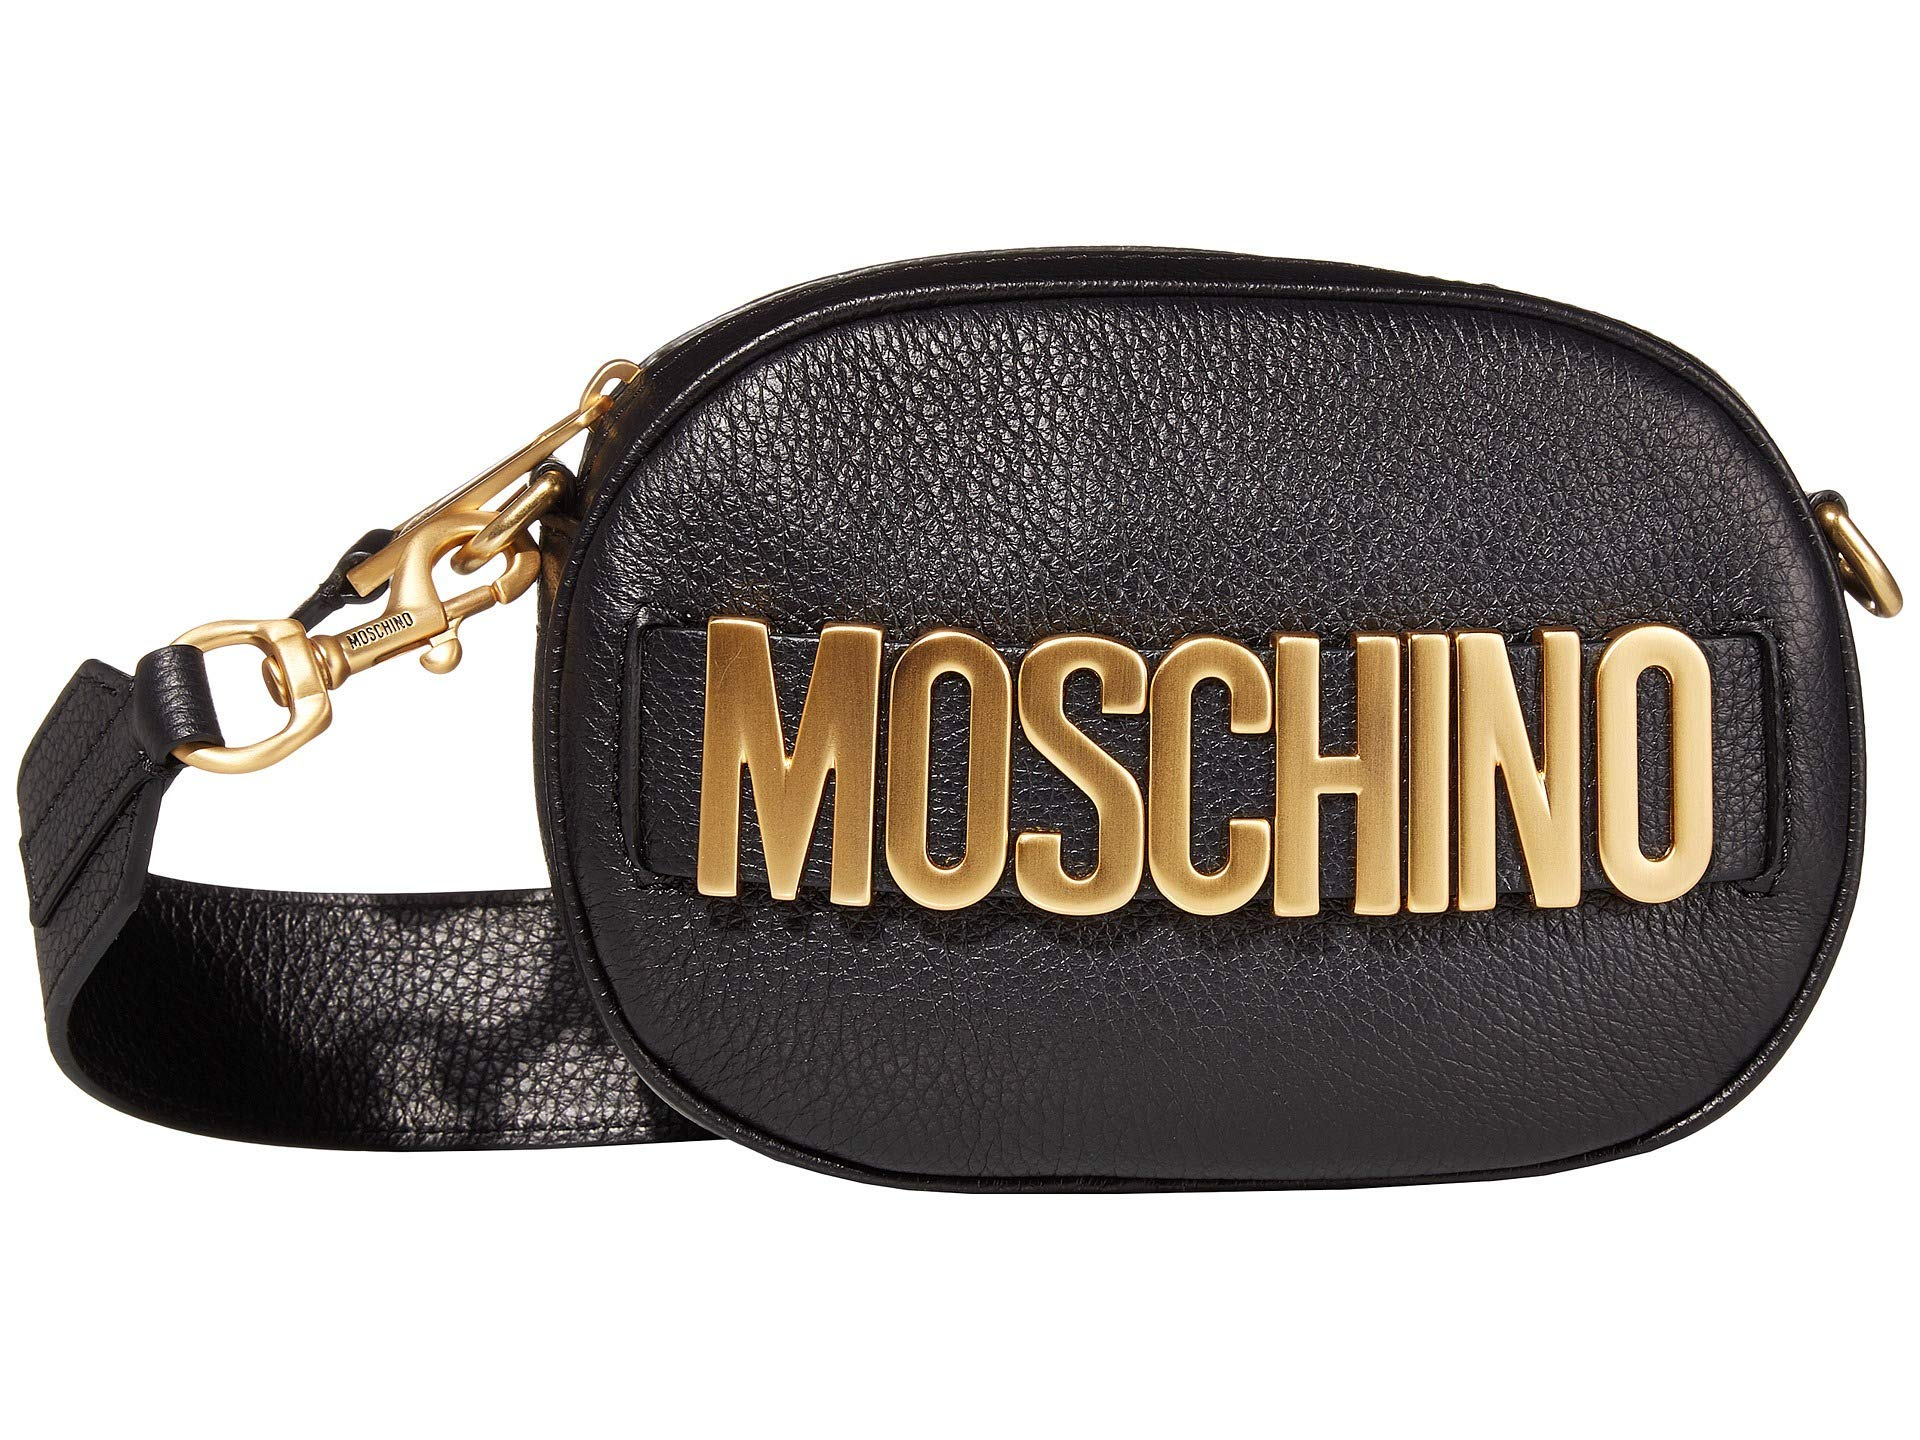 Moschino Leather Logo Crossbody Black One Size - wiihuu